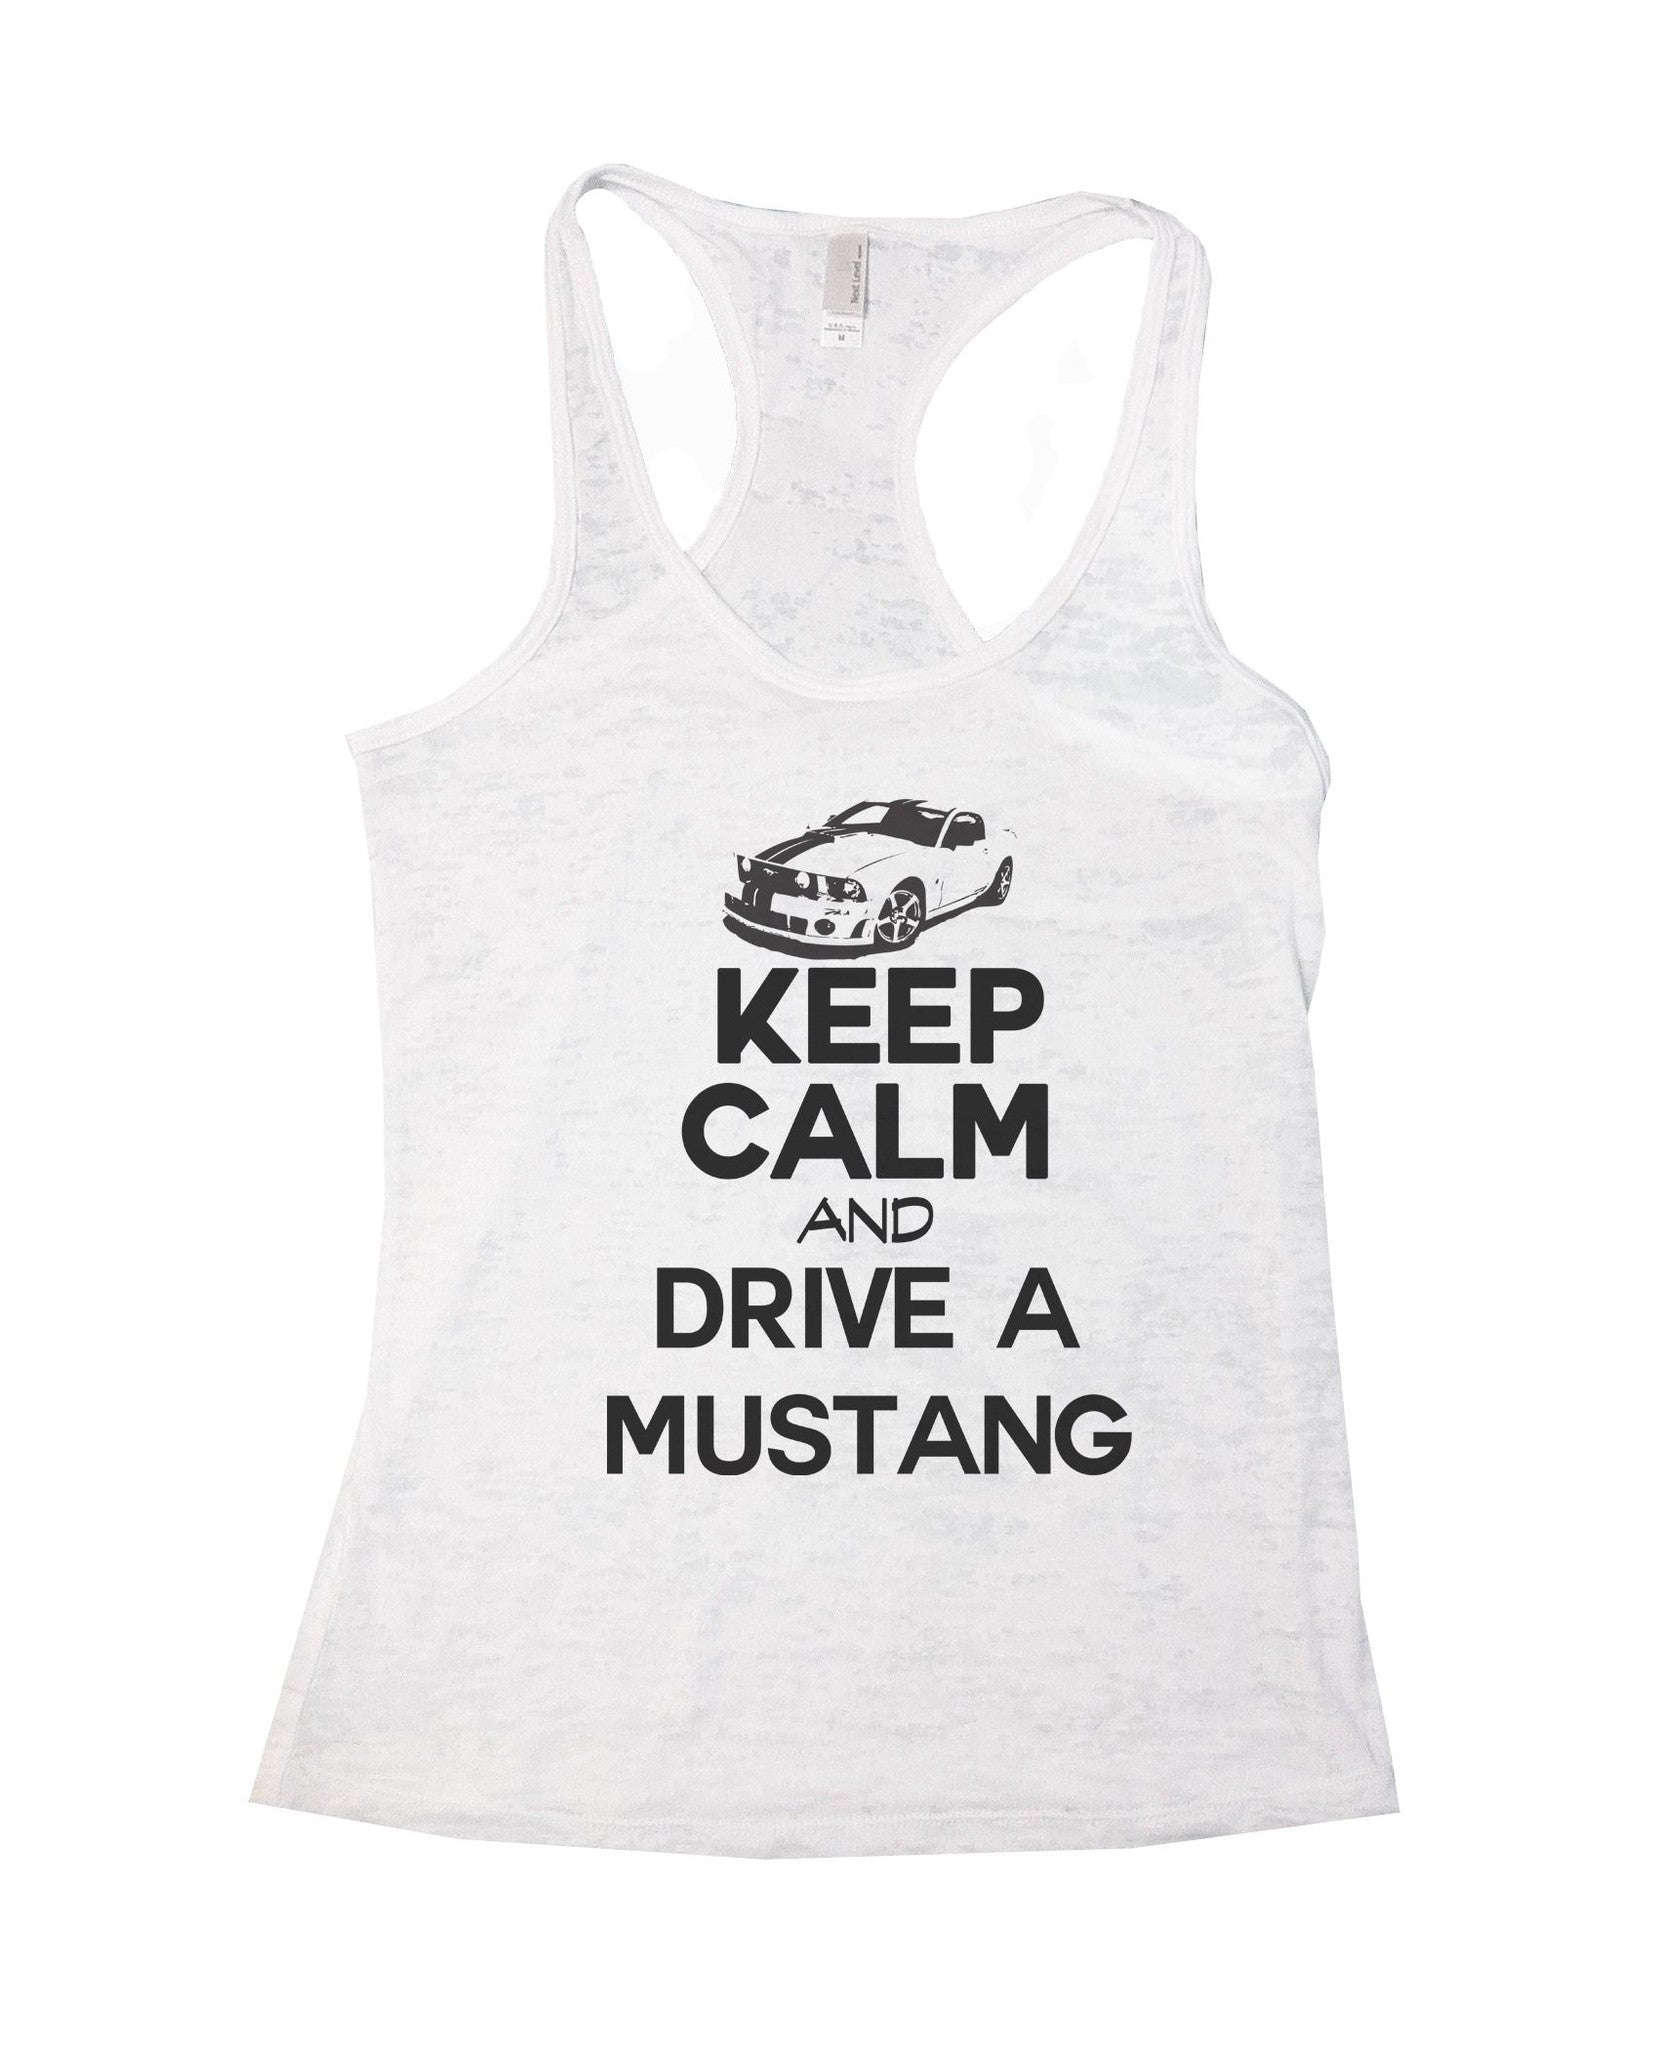 Keep Calm And Drive A Mustang Burnout Tank Top By BurnoutTankTops.com - 739 - Funny Shirts Tank Tops Burnouts and Triblends  - 5